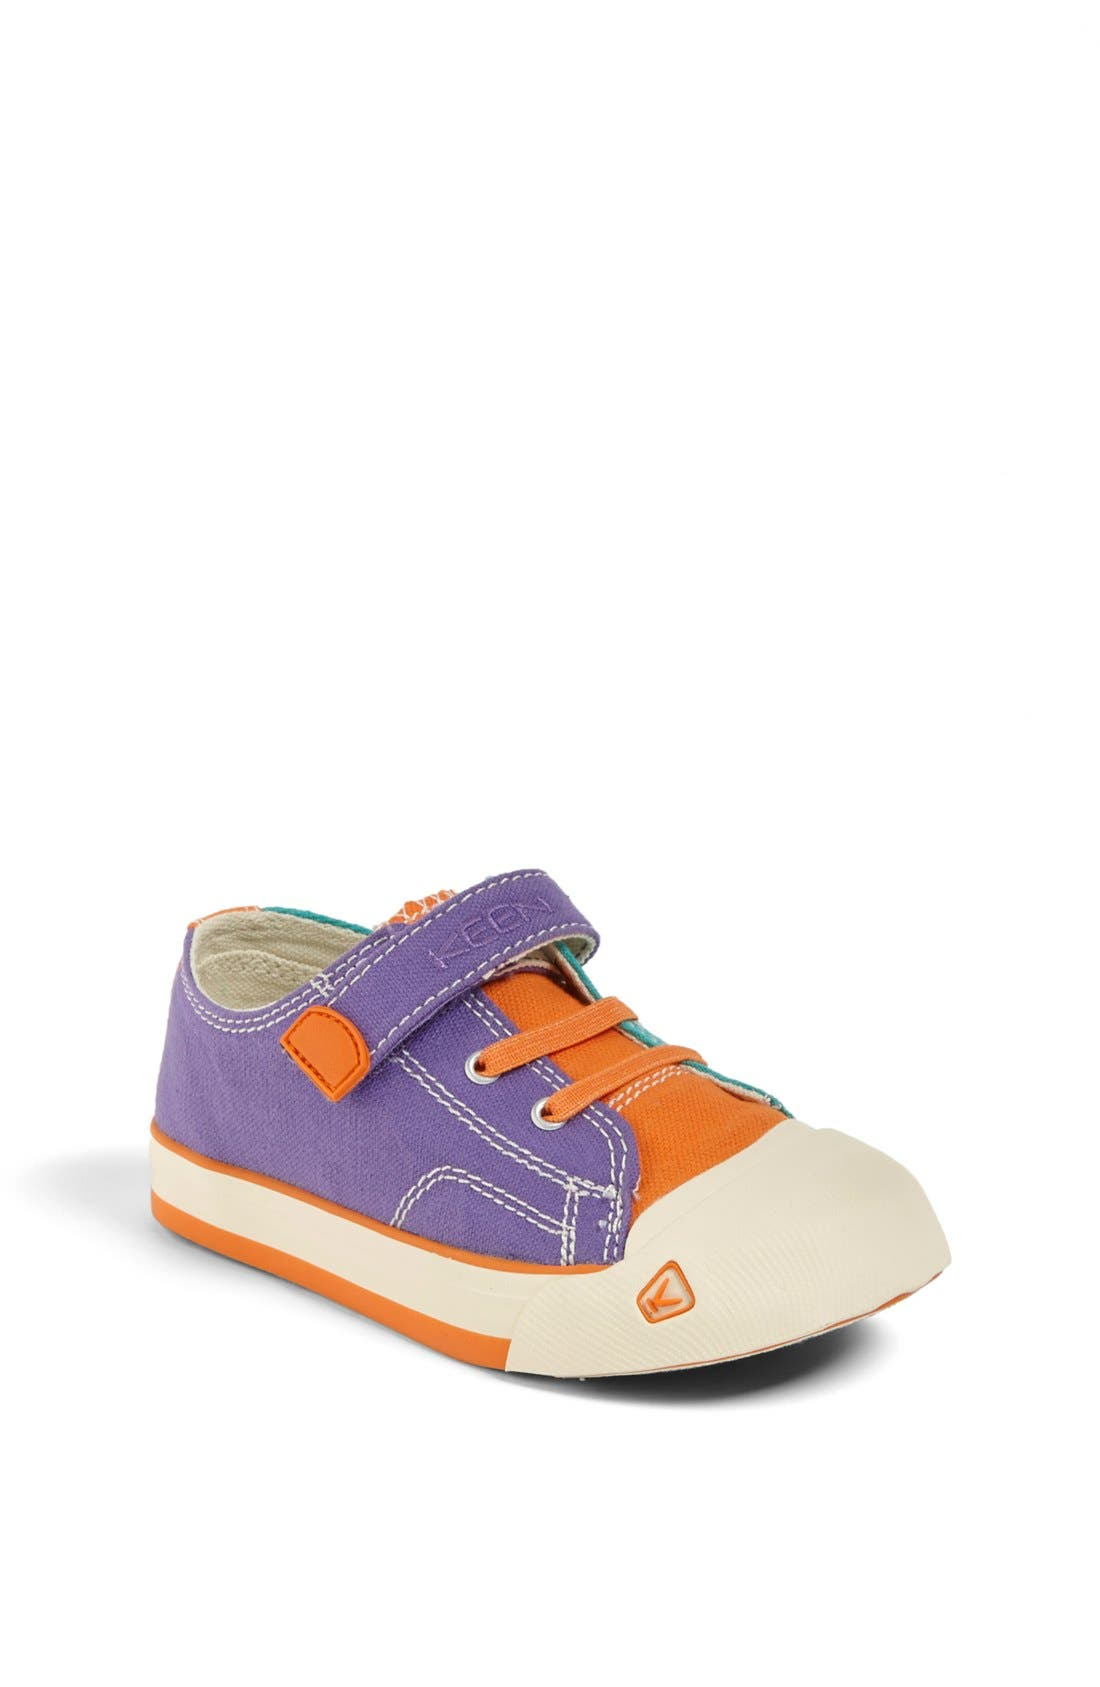 Alternate Image 1 Selected - Keen 'Coronado' Sneaker (Toddler & Little Kid)